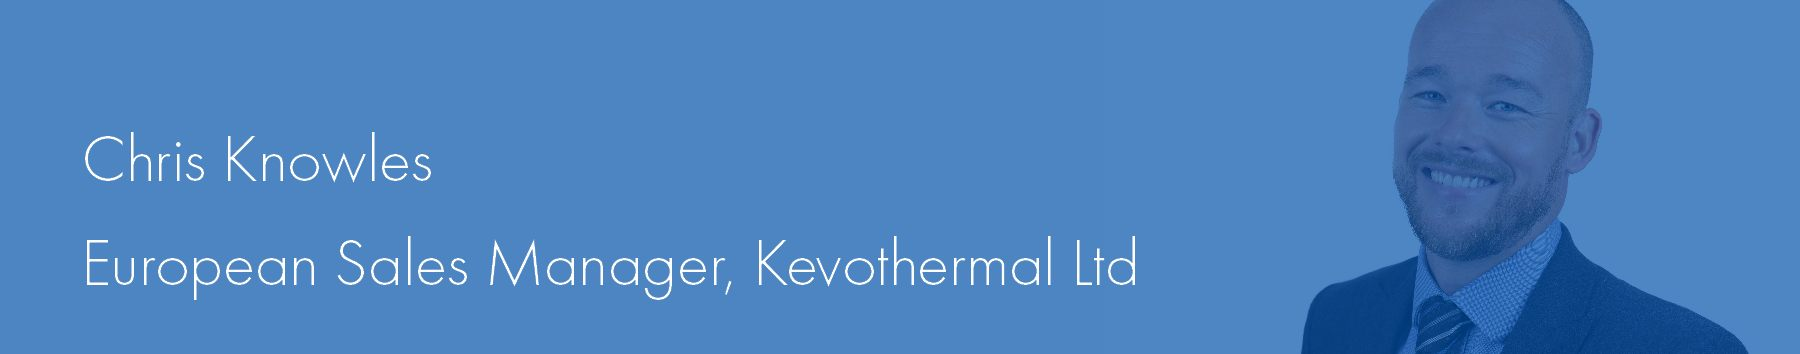 COMMERCIAL Photography Testimonial - Kevothermal